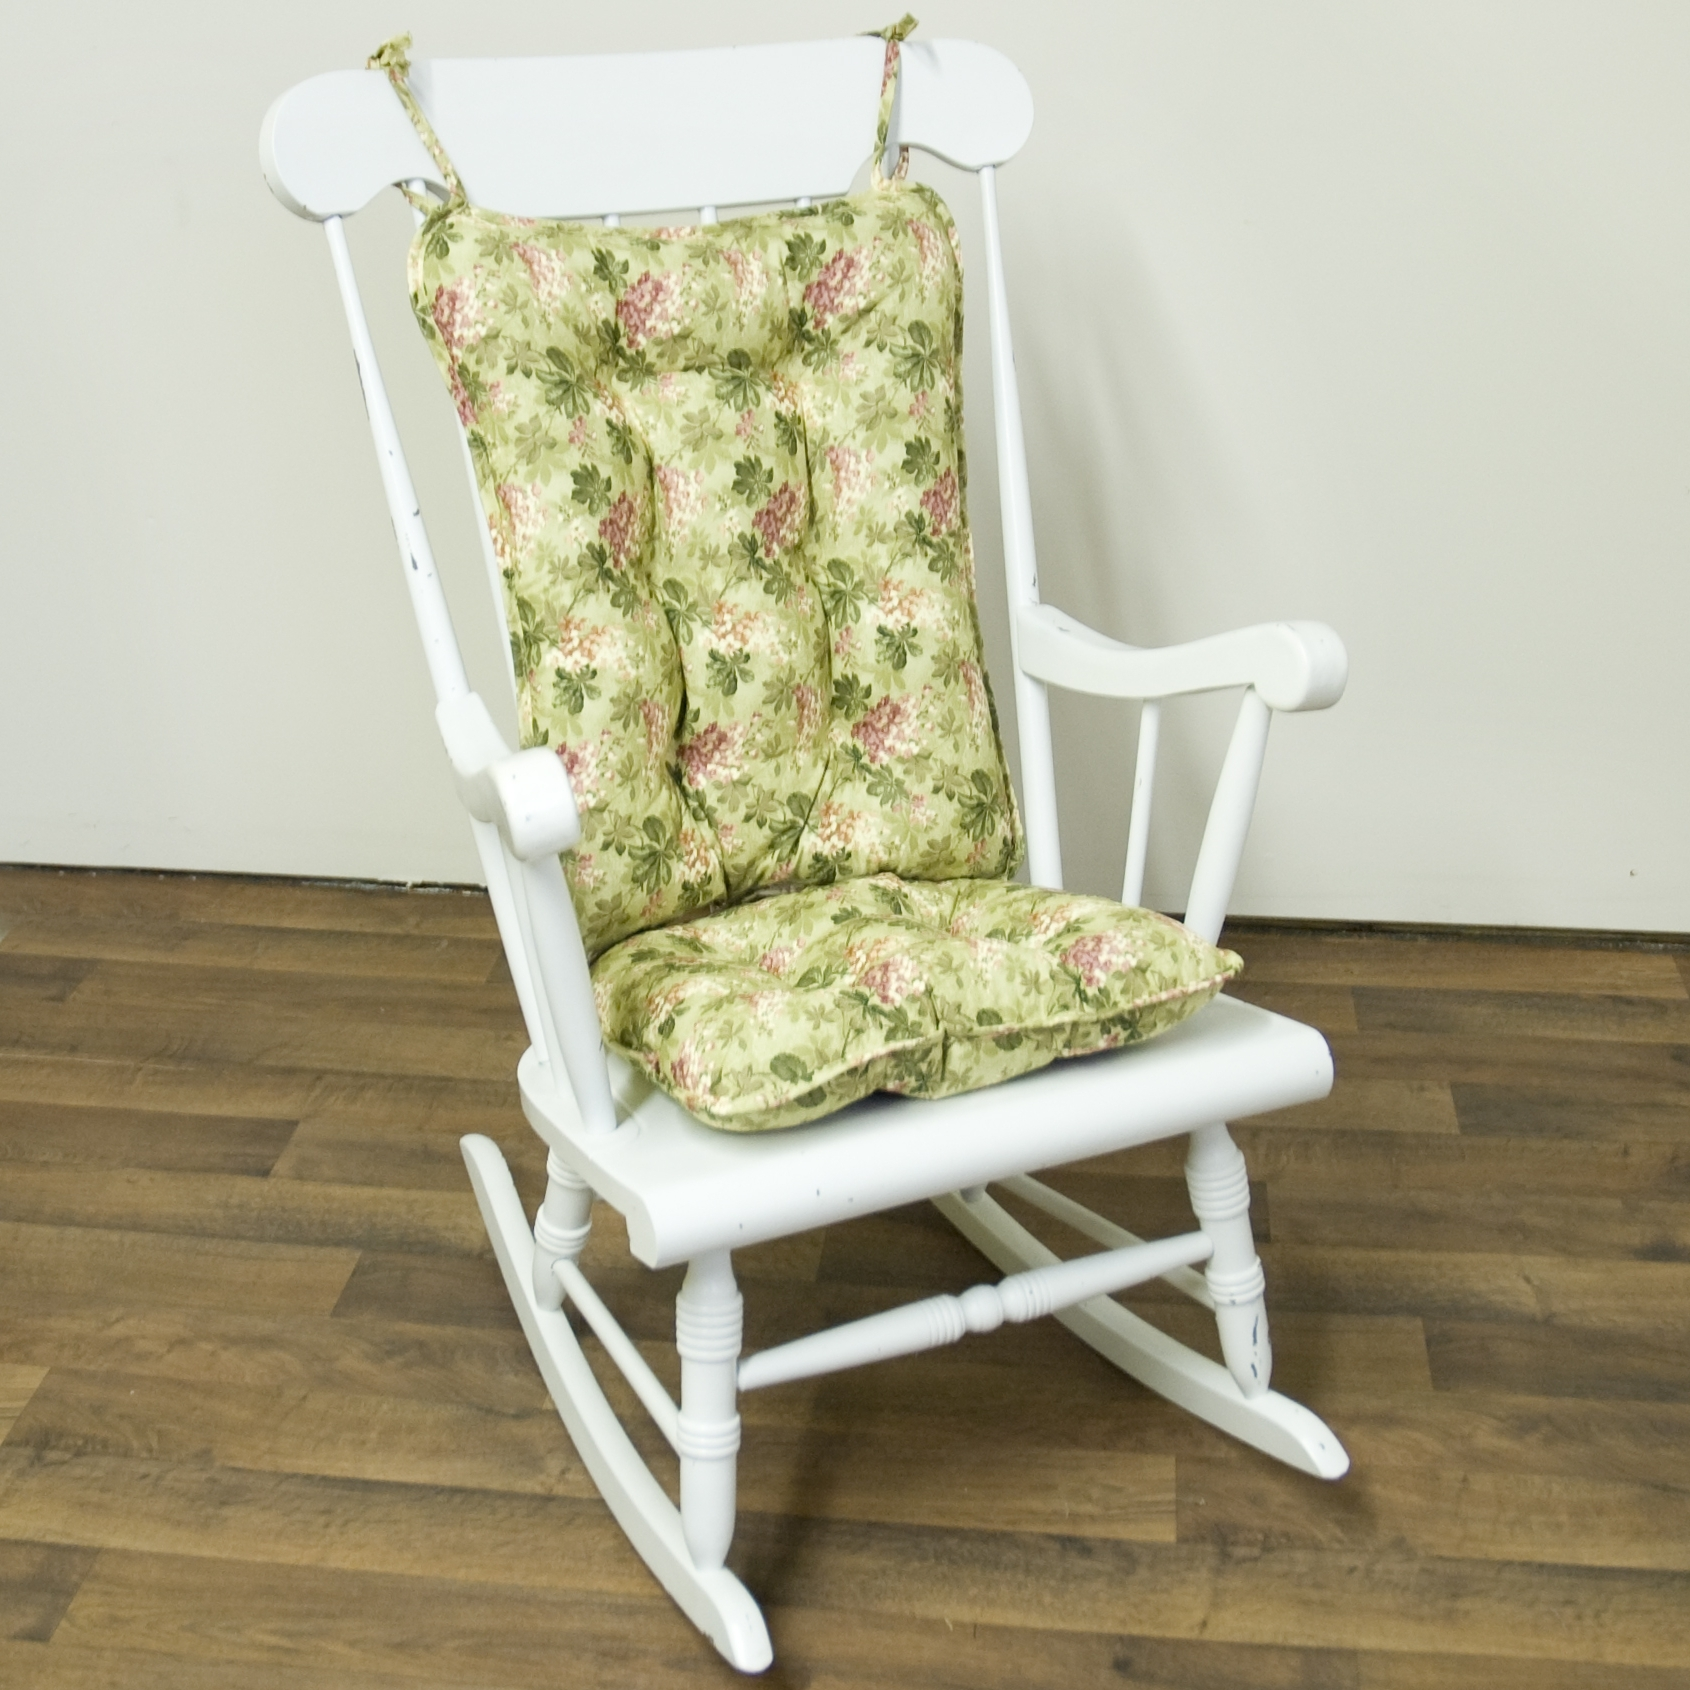 Outdoor Rocking Chair Cushions Flower : Beautiful Outdoor Rocking With Most Up To Date Outdoor Rocking Chairs With Cushions (View 11 of 20)